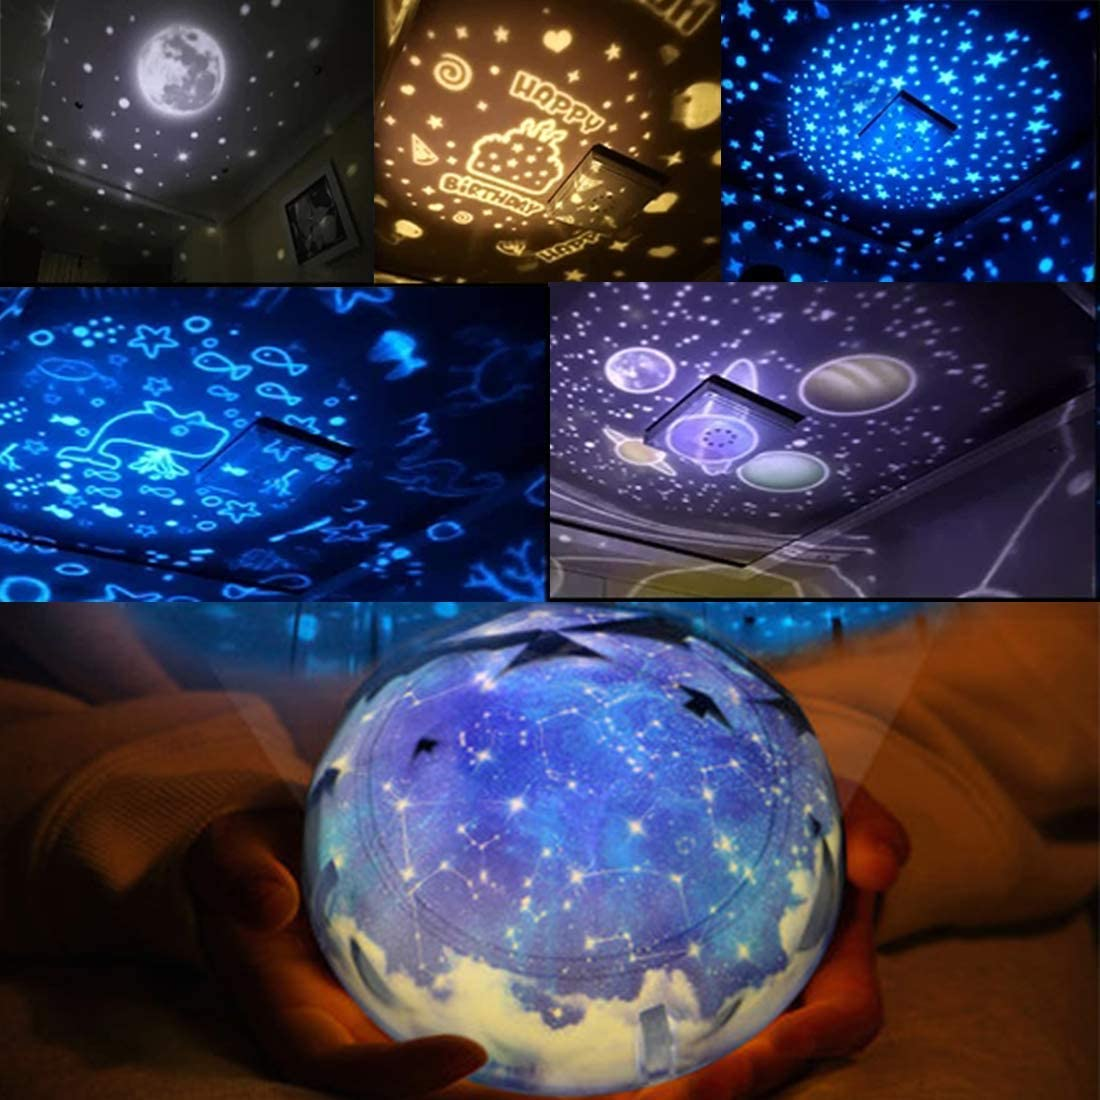 Star Night Lights Gifts for Kids Age 3-10, Constellation Stars Projector Lamp Nursery Night Light for Boys Girls Bedroom Kids Room Decor Lamps 3 4 5 6-10 Year Old Boy Girl Toy Birthday Xmas Gifts